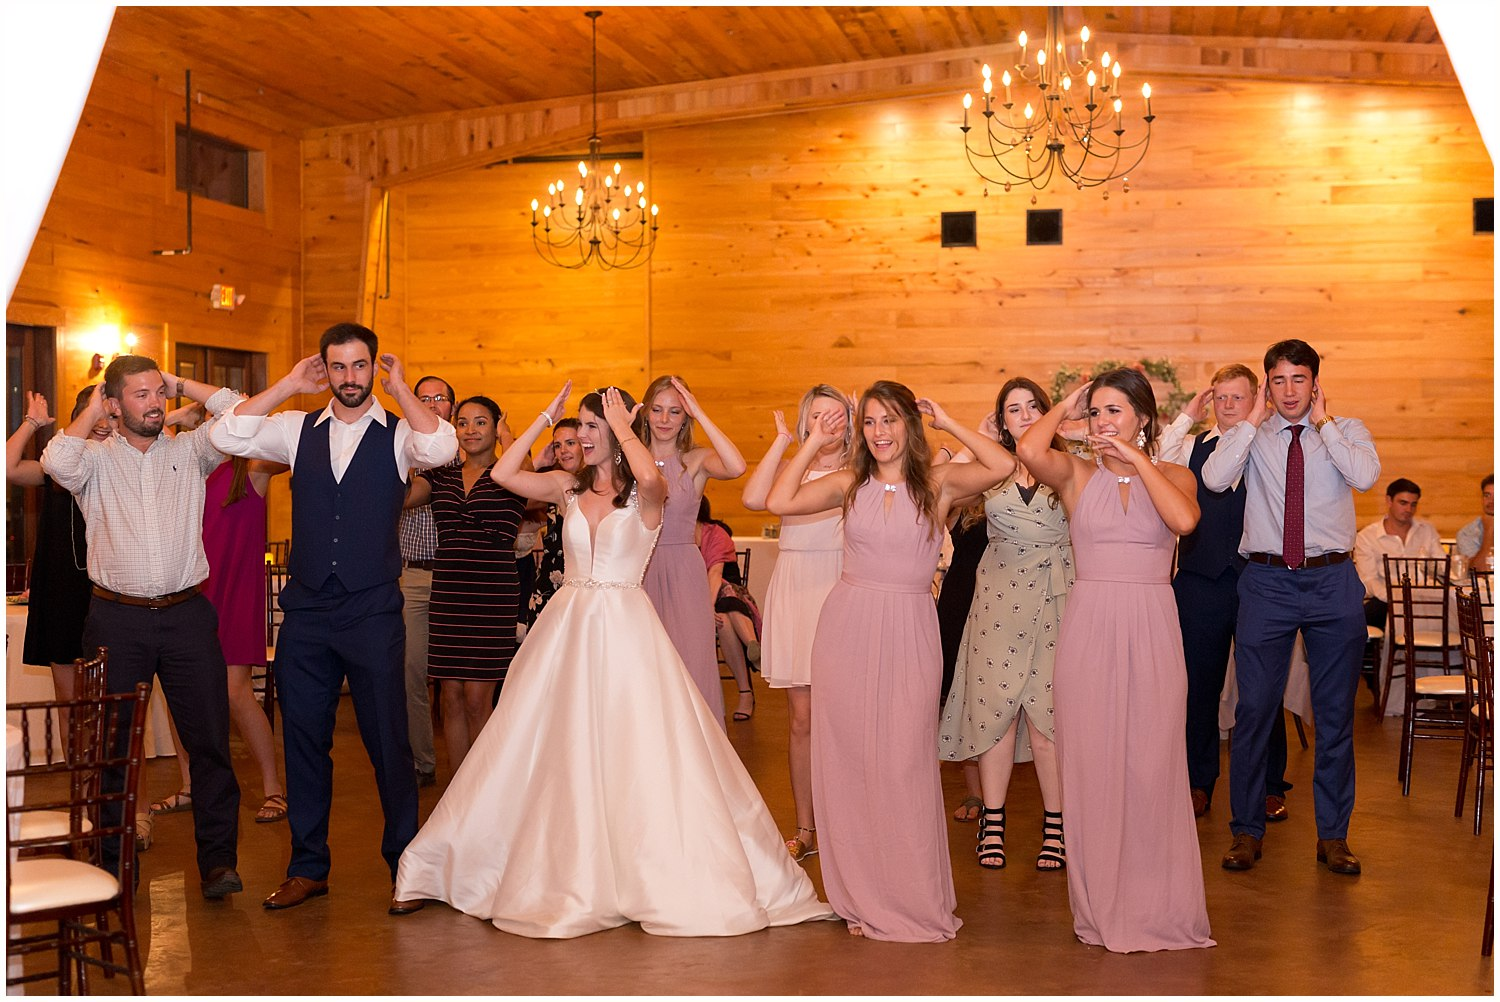 dancing at barn wedding reception in Kiln, MS